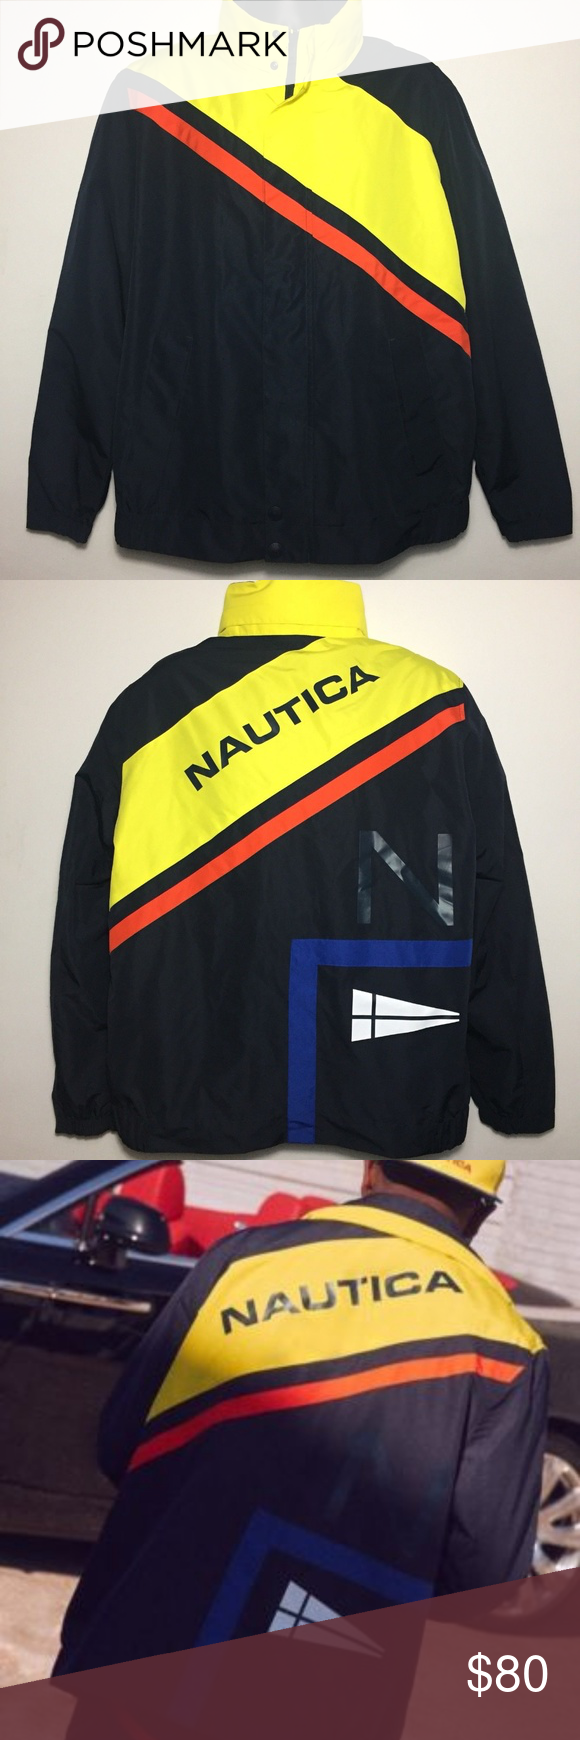 Nautica X Lil Yachty Vintage Collection Uo Jacket One Of A Kind Vintage Lil Yatchy X Urban Outfitters Hood Urban Outfitters Jacket Jackets Vintage Collection